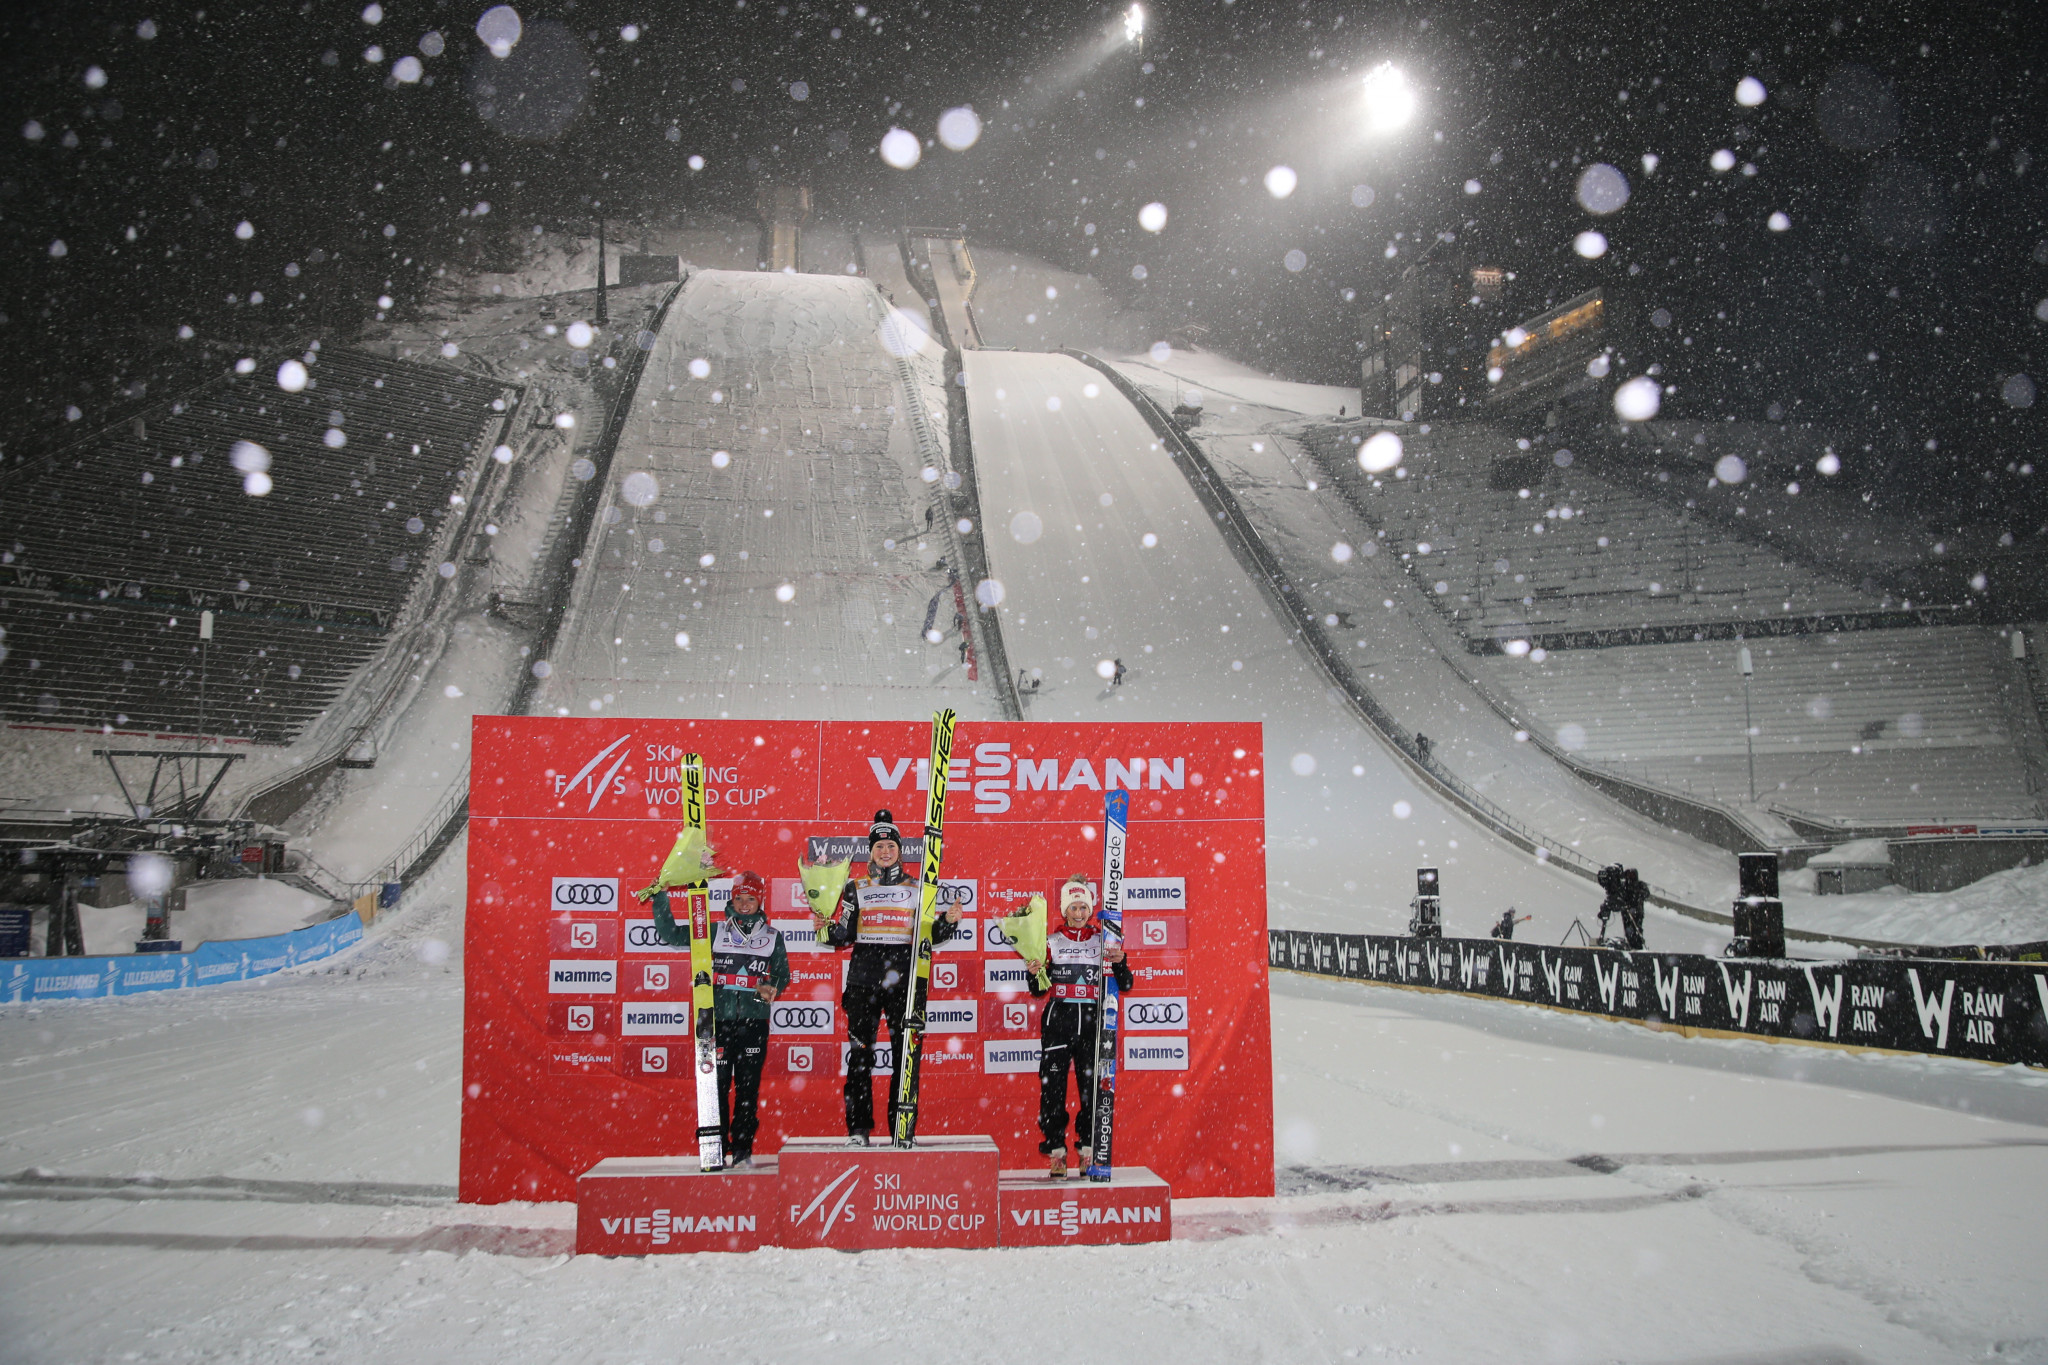 The women's Ski Jumping World Cup season was due to start in Lillehammer, but has now been delayed due to the coronavirus pandemic ©Getty Images